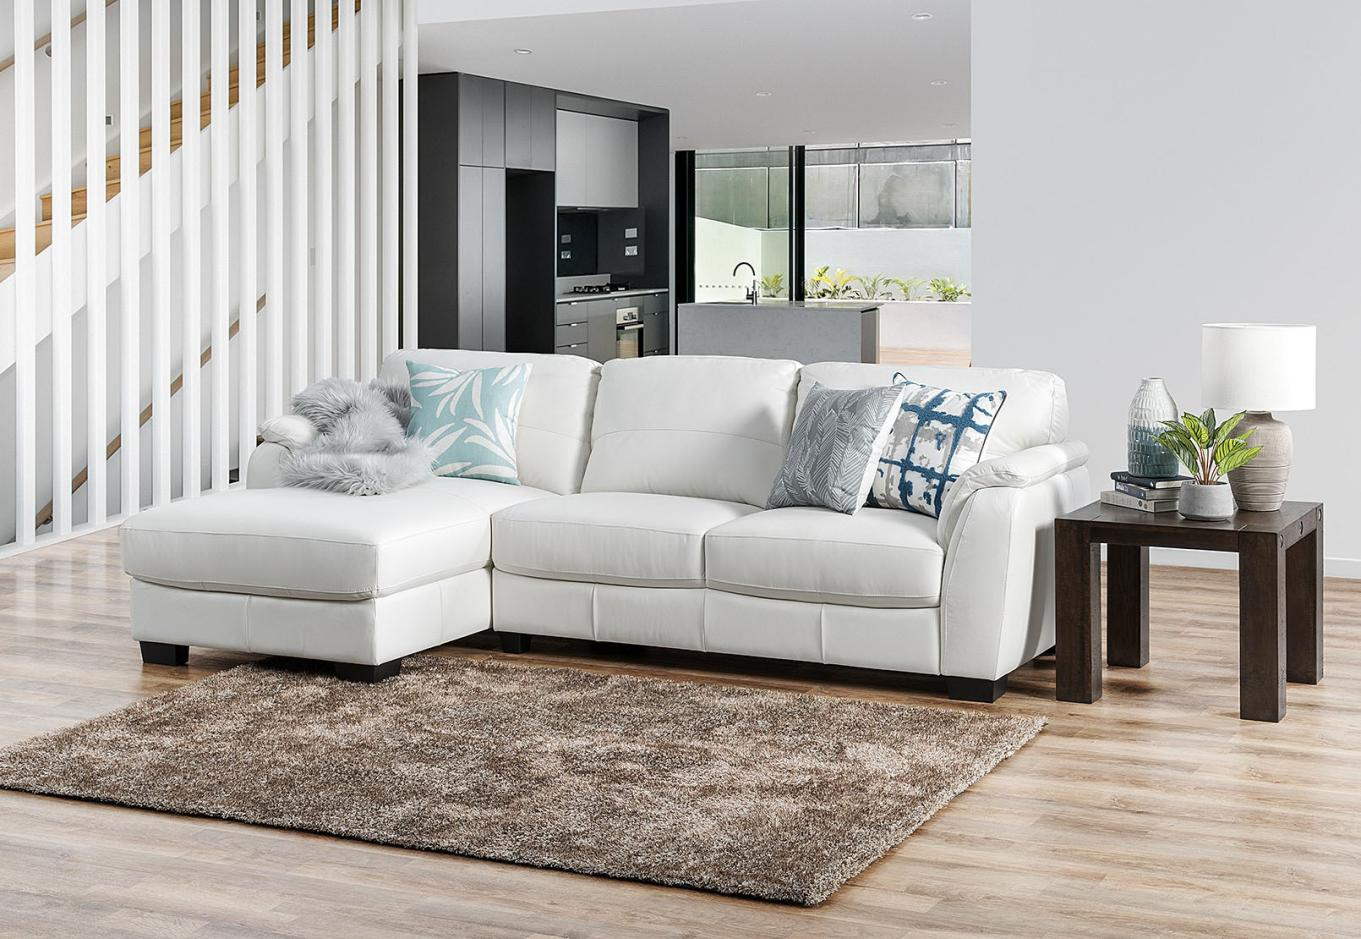 Marissa Leather 3 Seater Chaise White – Sofas, Lounges & Couches Inside Marissa Sofa Chairs (View 10 of 25)